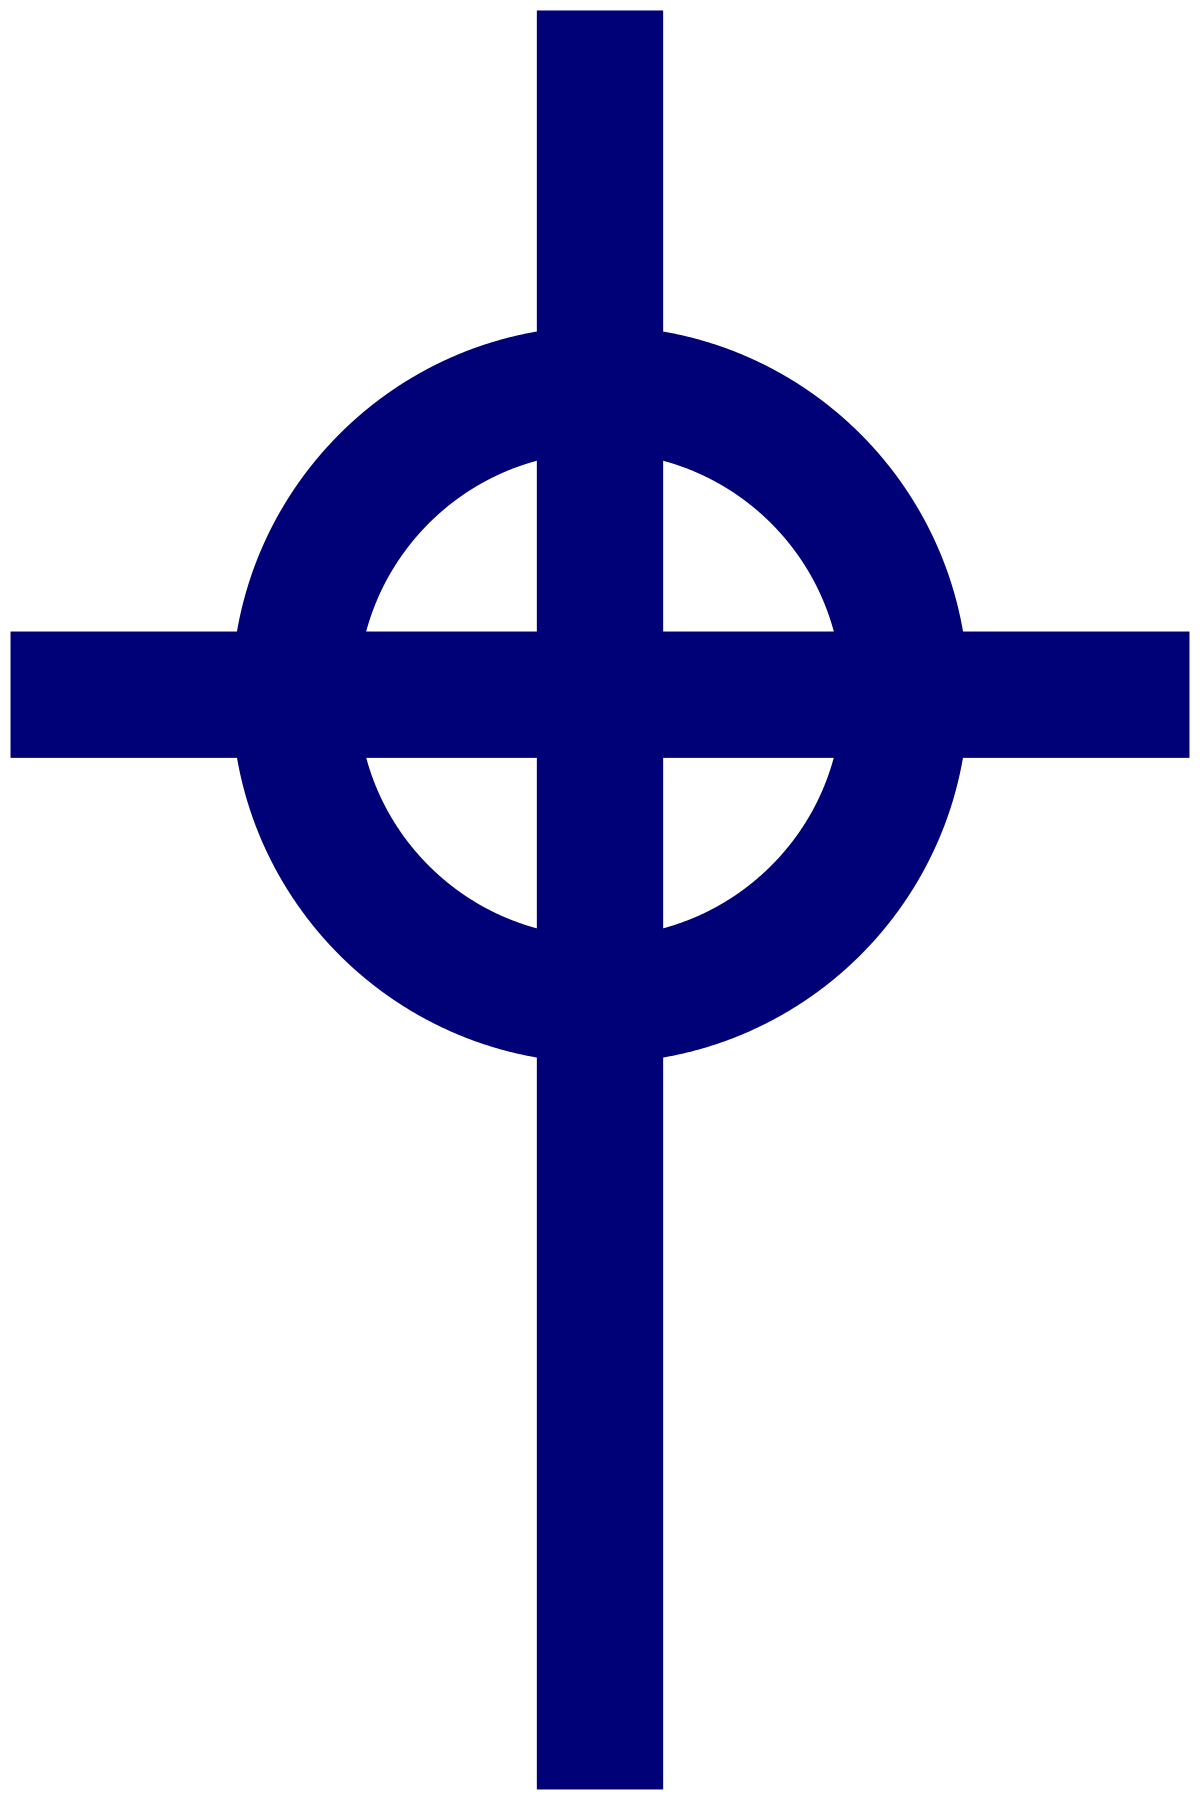 Greek symbol for christ choice image symbol and sign ideas protestant symbols free download best protestant symbols on 1200x1800 irish catholics buycottarizona buycottarizona